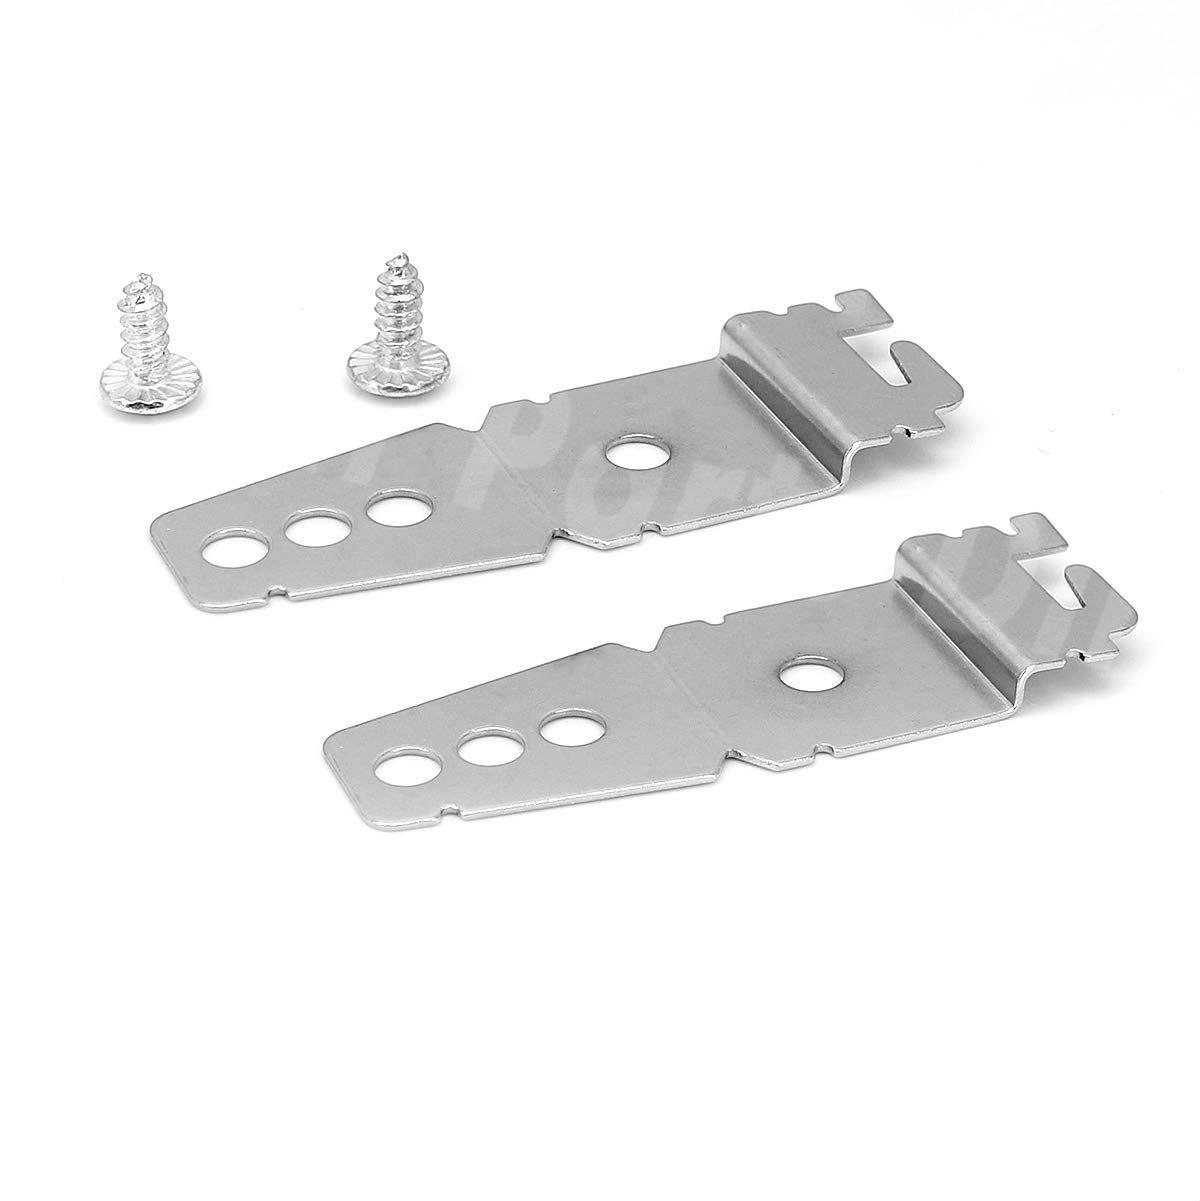 2 Pack 8269145 Mounting Bracket Replacement Parts Exact Fit for Kenmore Whirlpool KitchenAid Dishwasher, Replaces 8269145 WP8269145VP 51hEVMSrA-L